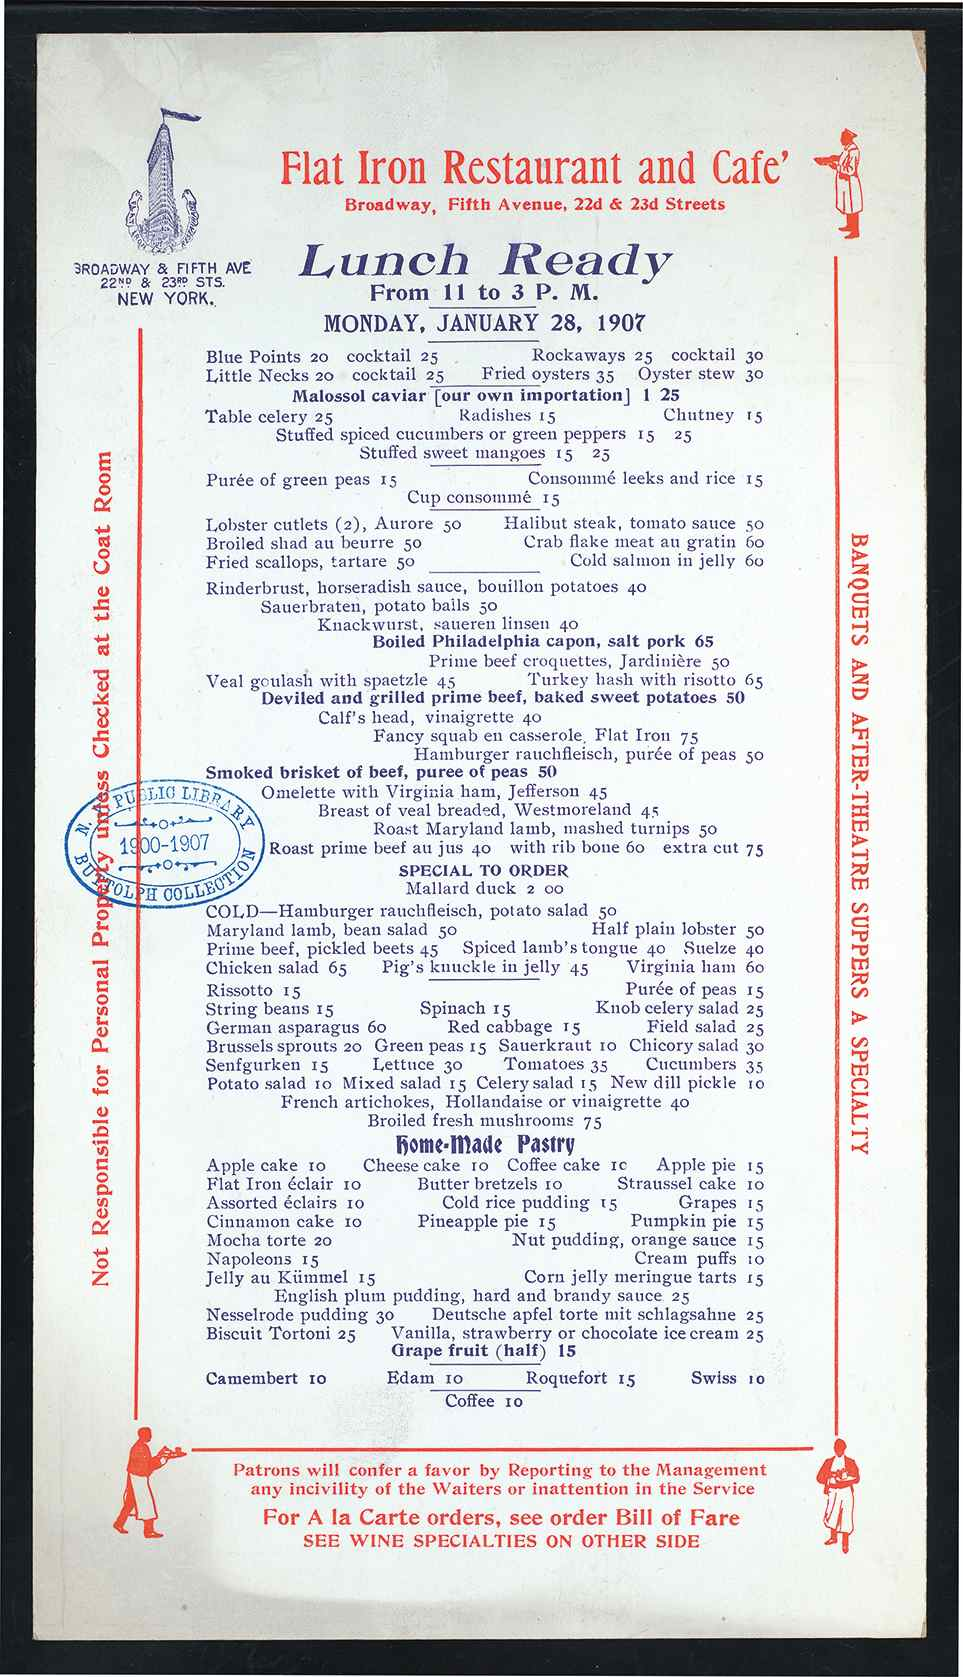 The menu of New York's Flatiron Restaurant and Cafe in 1906 (Menu courtesy the Buttolph Collection, Rare Books Division, The New York Public Library, Astor, Lenox, and Tiden Foundations. Click to Enlarge)